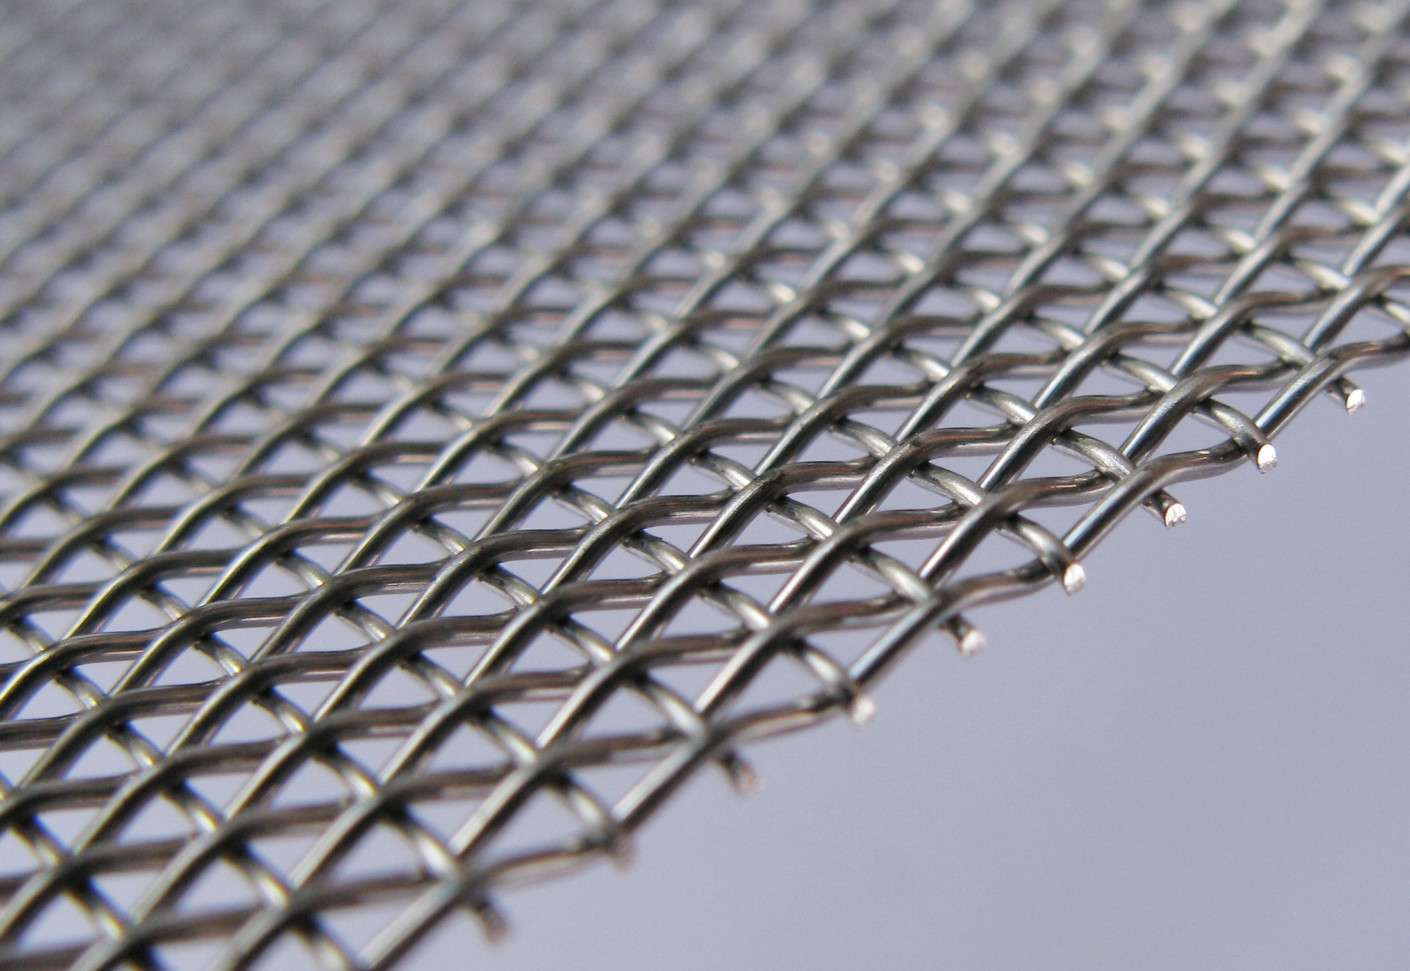 Stainless Steel Wire Distributors : Stainless steel wire mesh by weisse eschrich stylepark